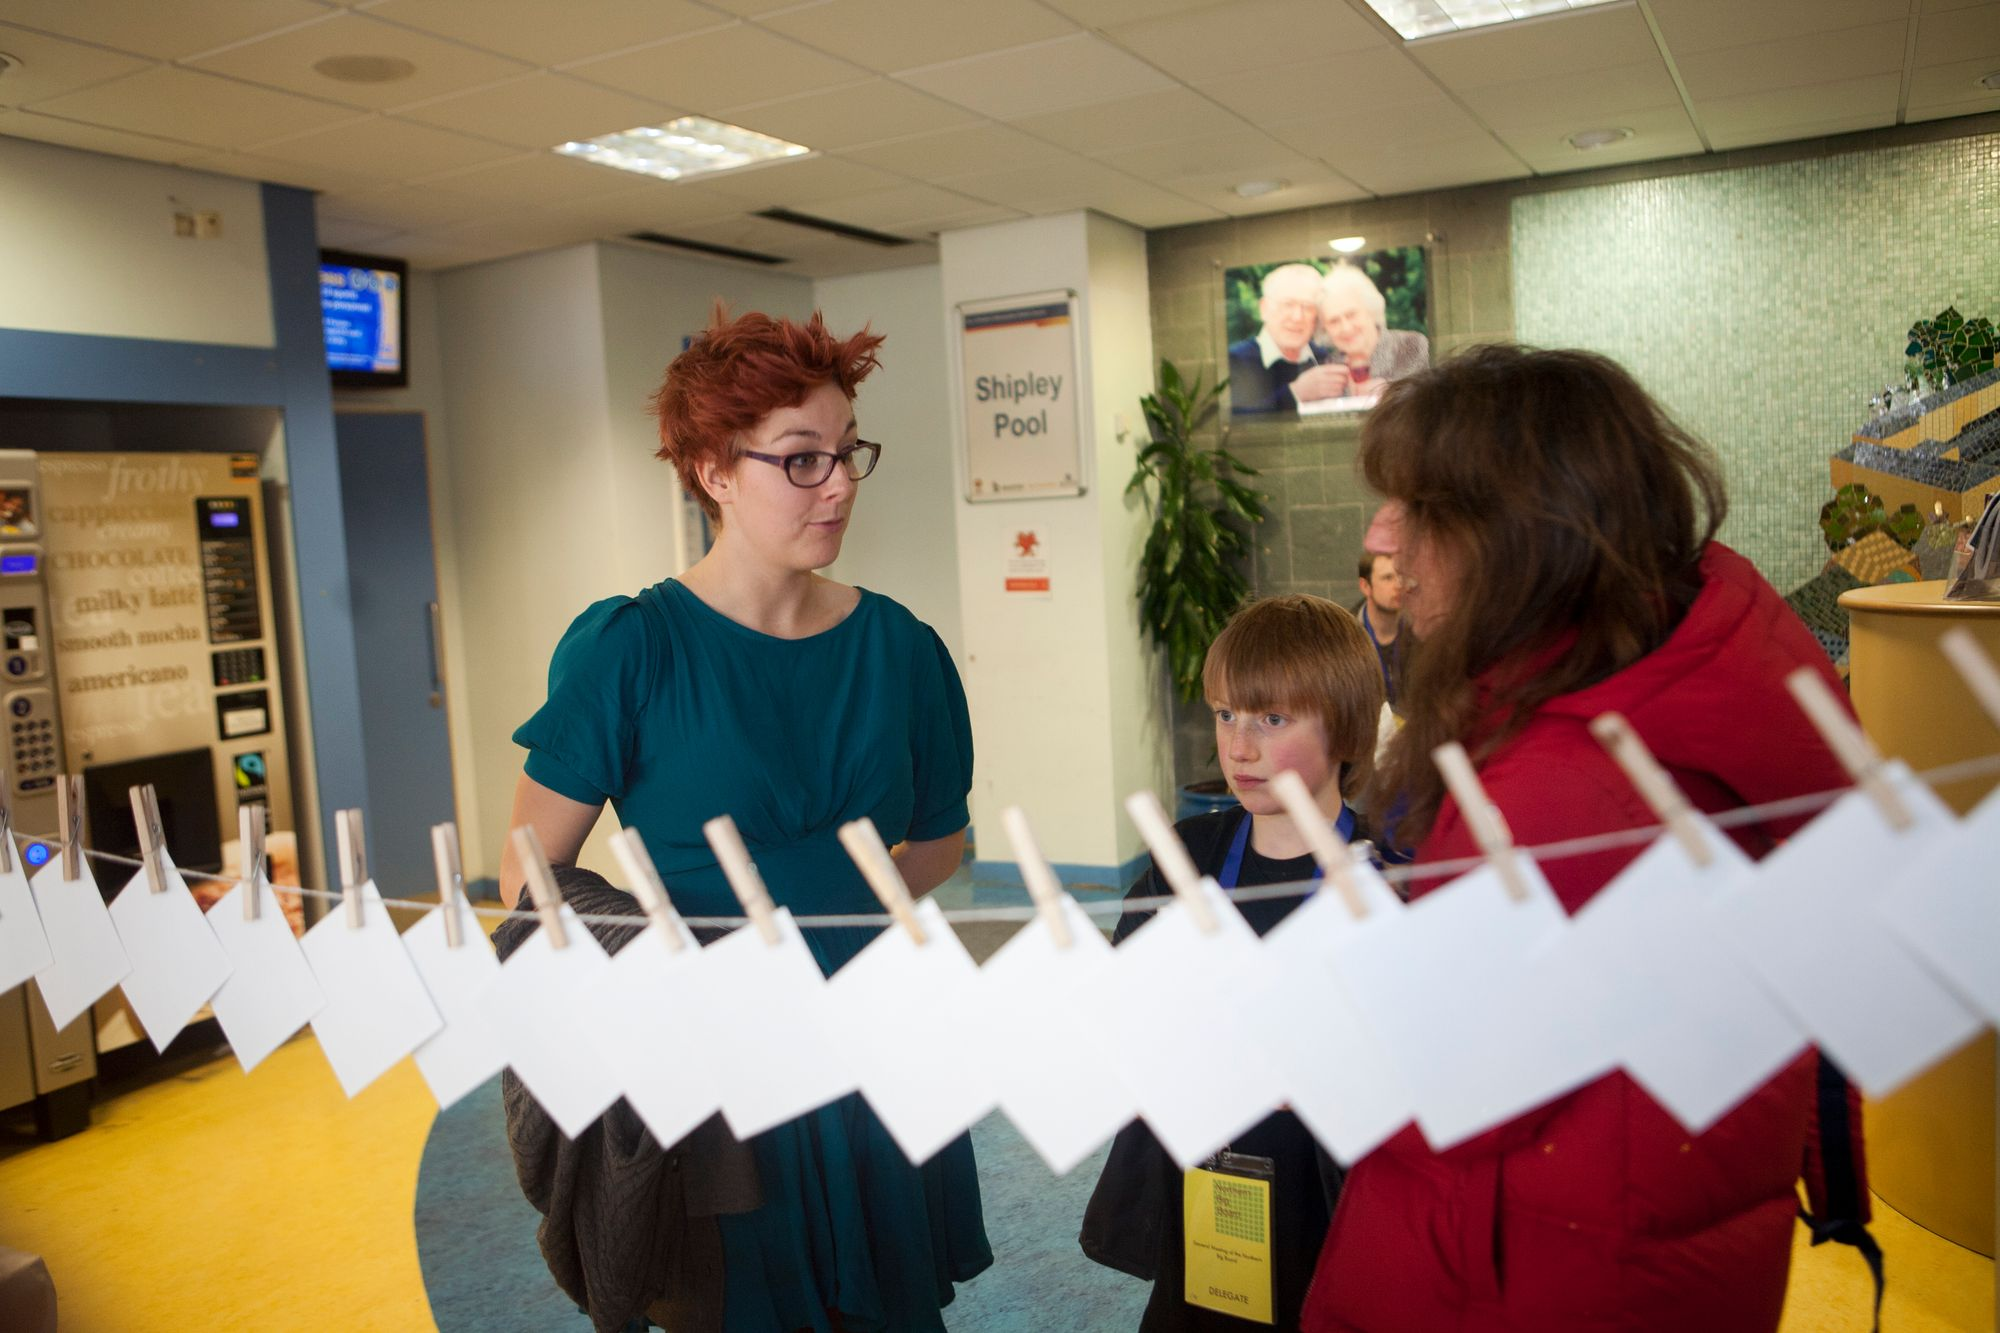 A young woman with red spiky hair and a blue dress on talks to a woman in a red parka in the lobby of a swimming pool, in the front of the shot are a number of cards pegged to a piece of string, they are photographed from the blank side.